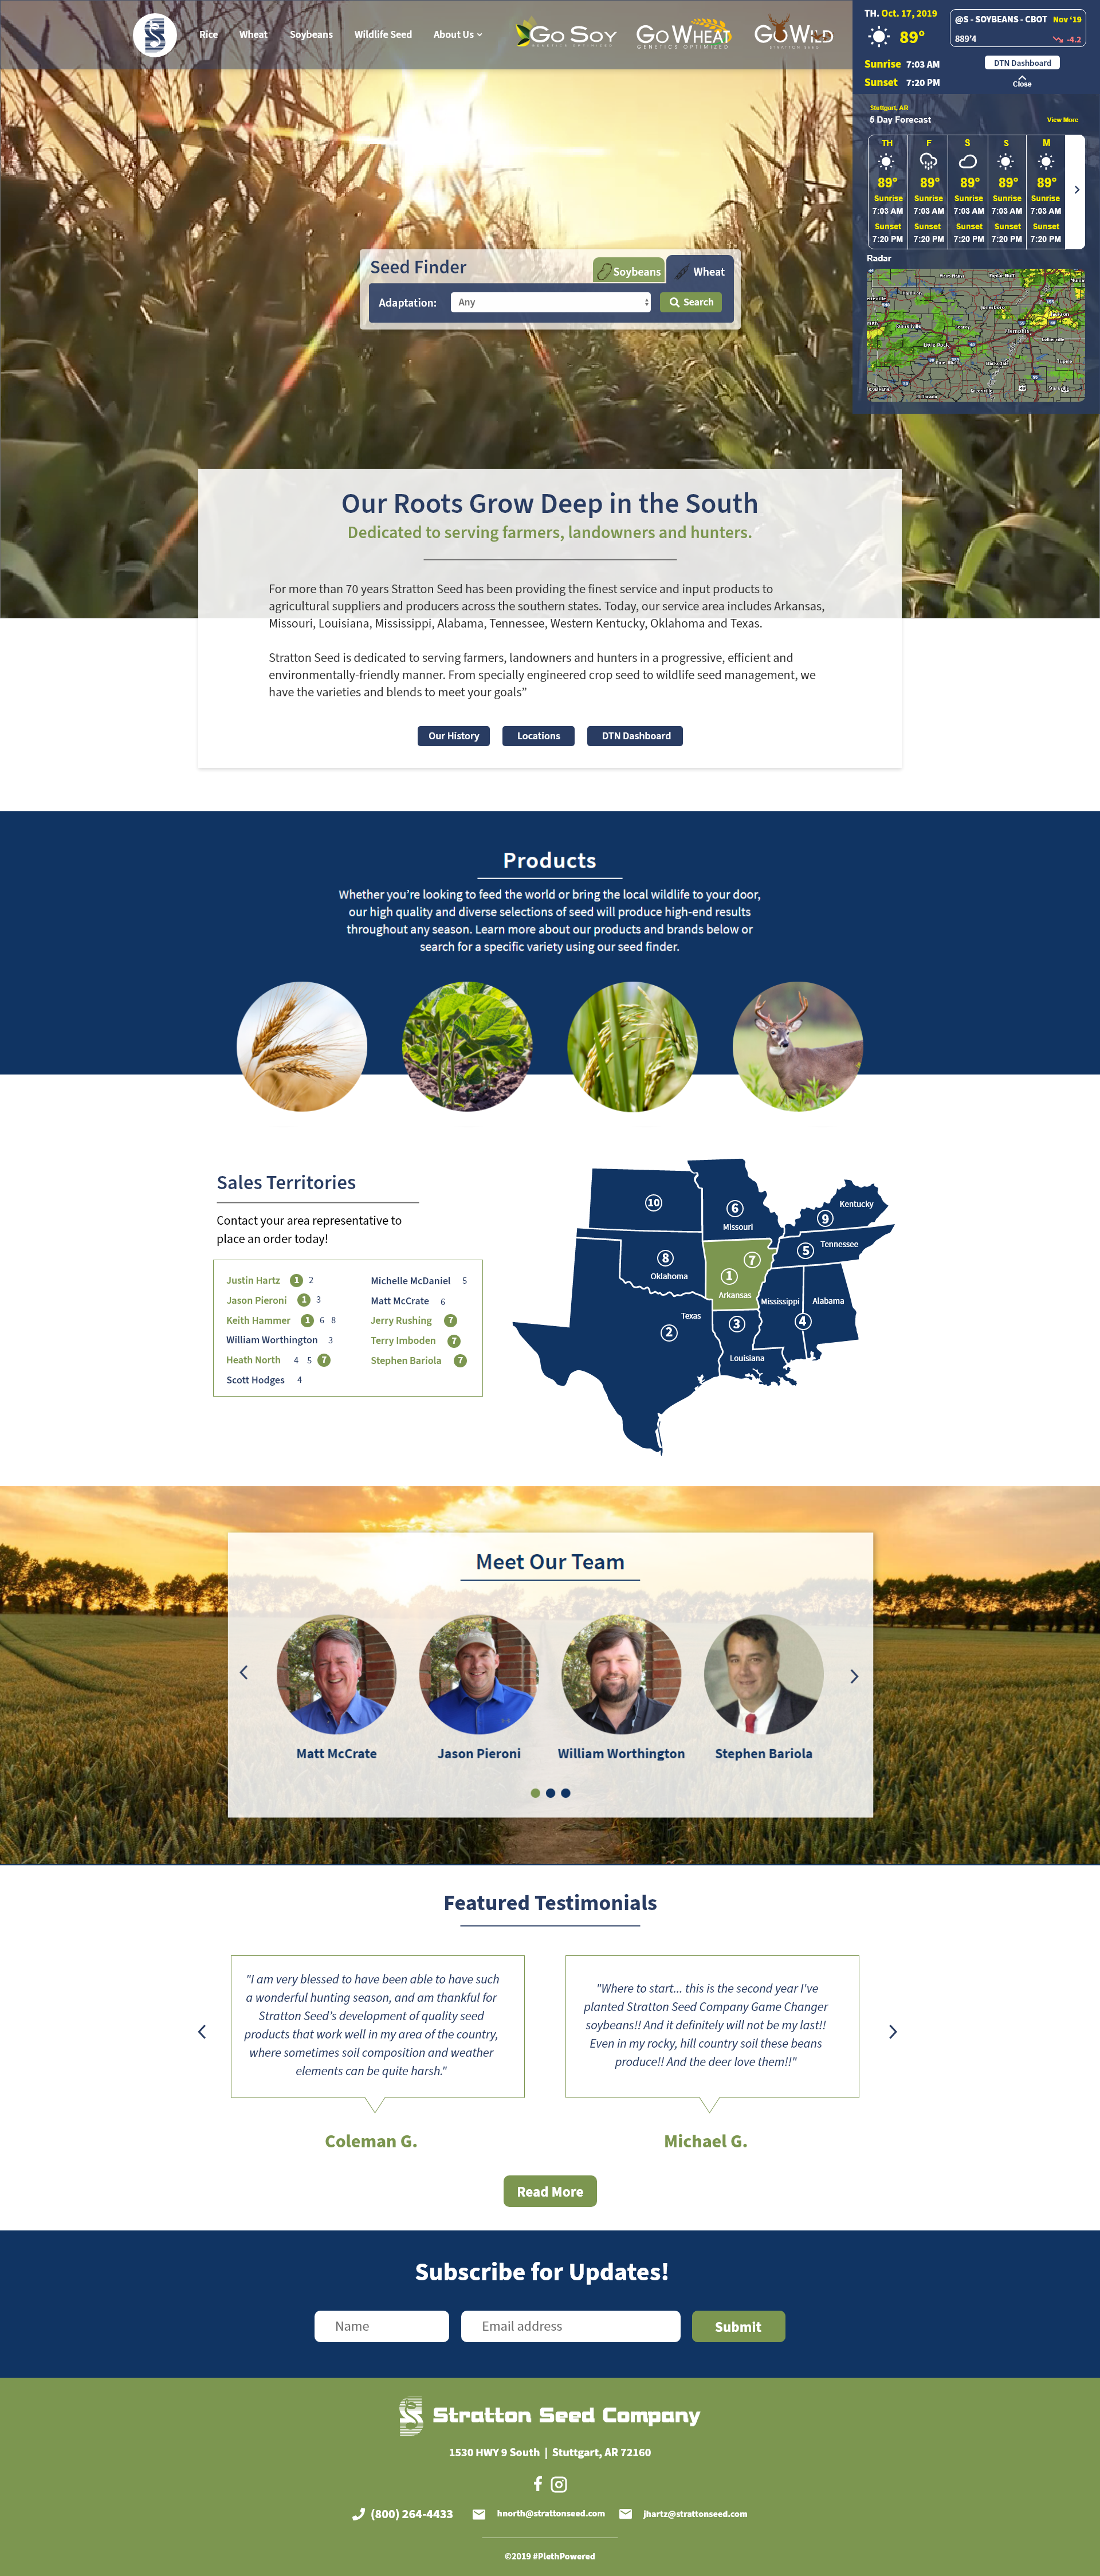 homepage layout of strattonseed.com